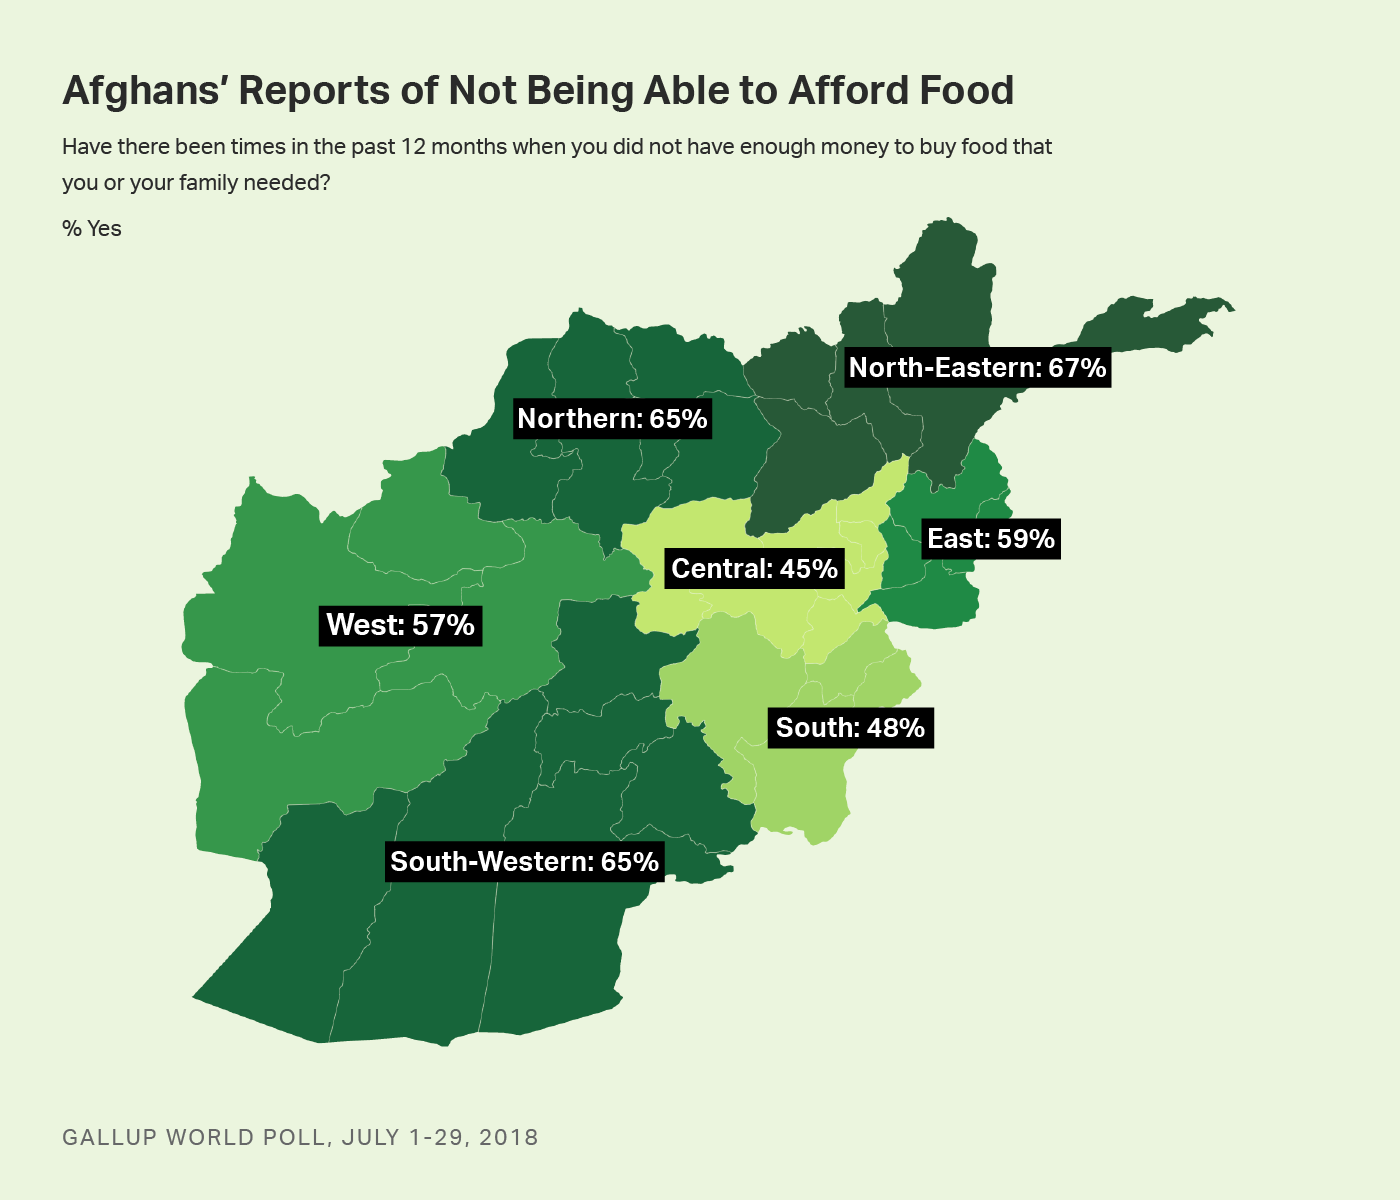 Heat map. The percentages of Afghans who struggled to afford food by region.